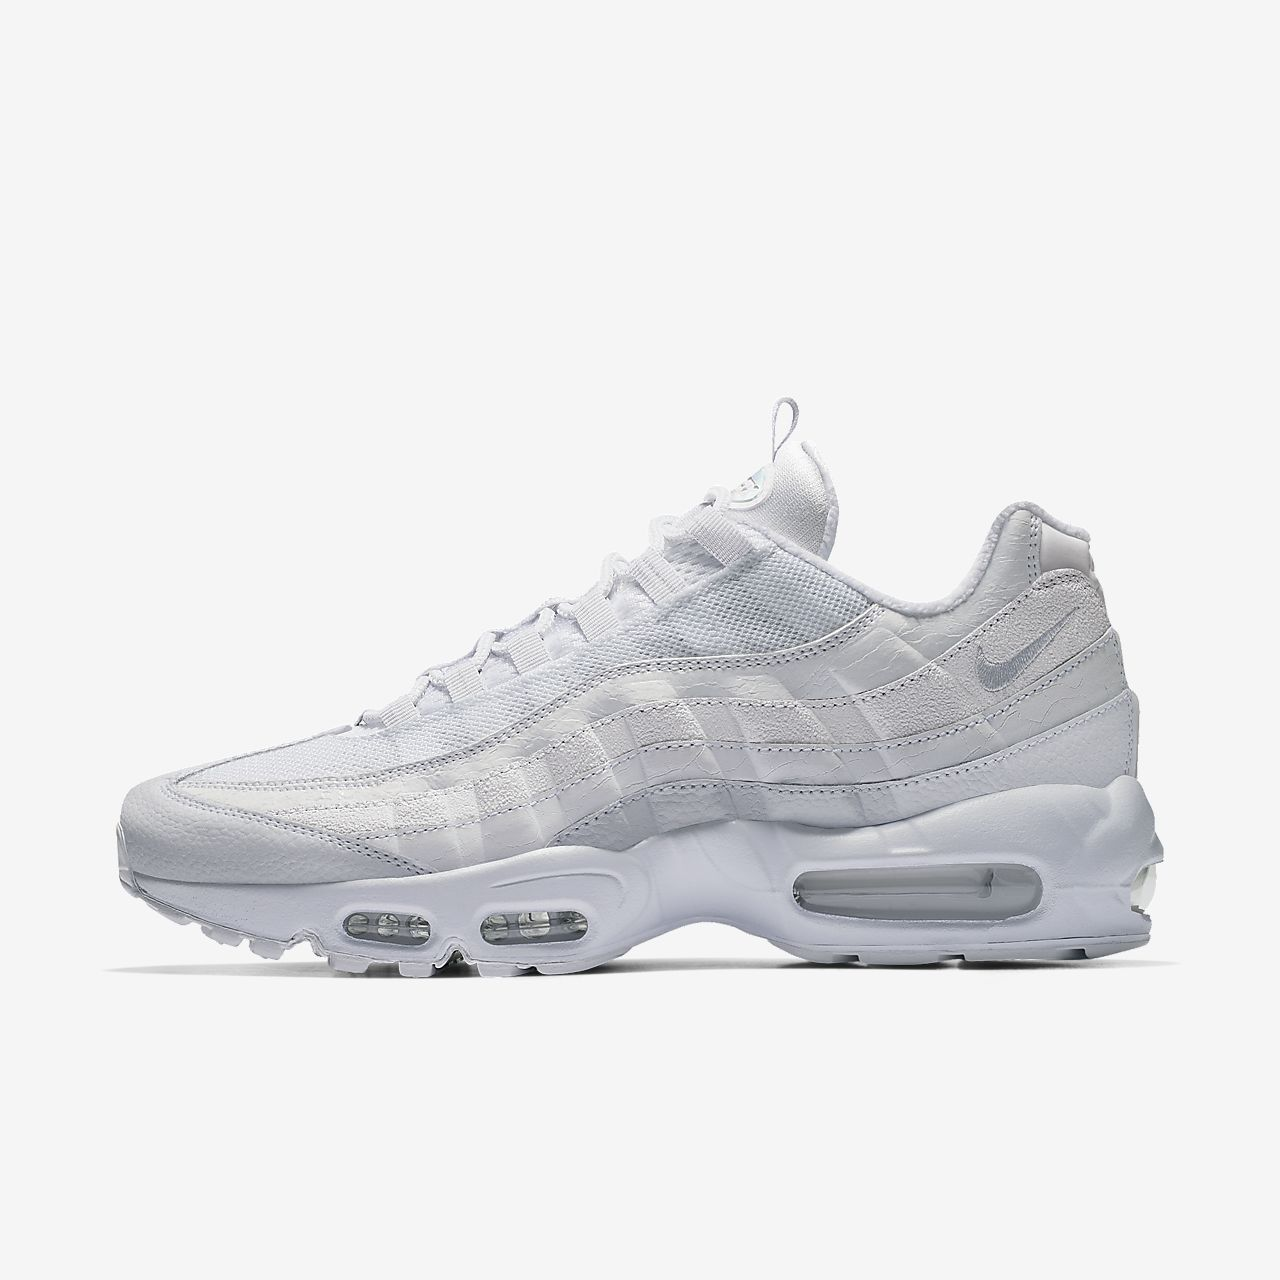 new images of store get new Nike Air Max 95 iD Winter White Men's Shoe